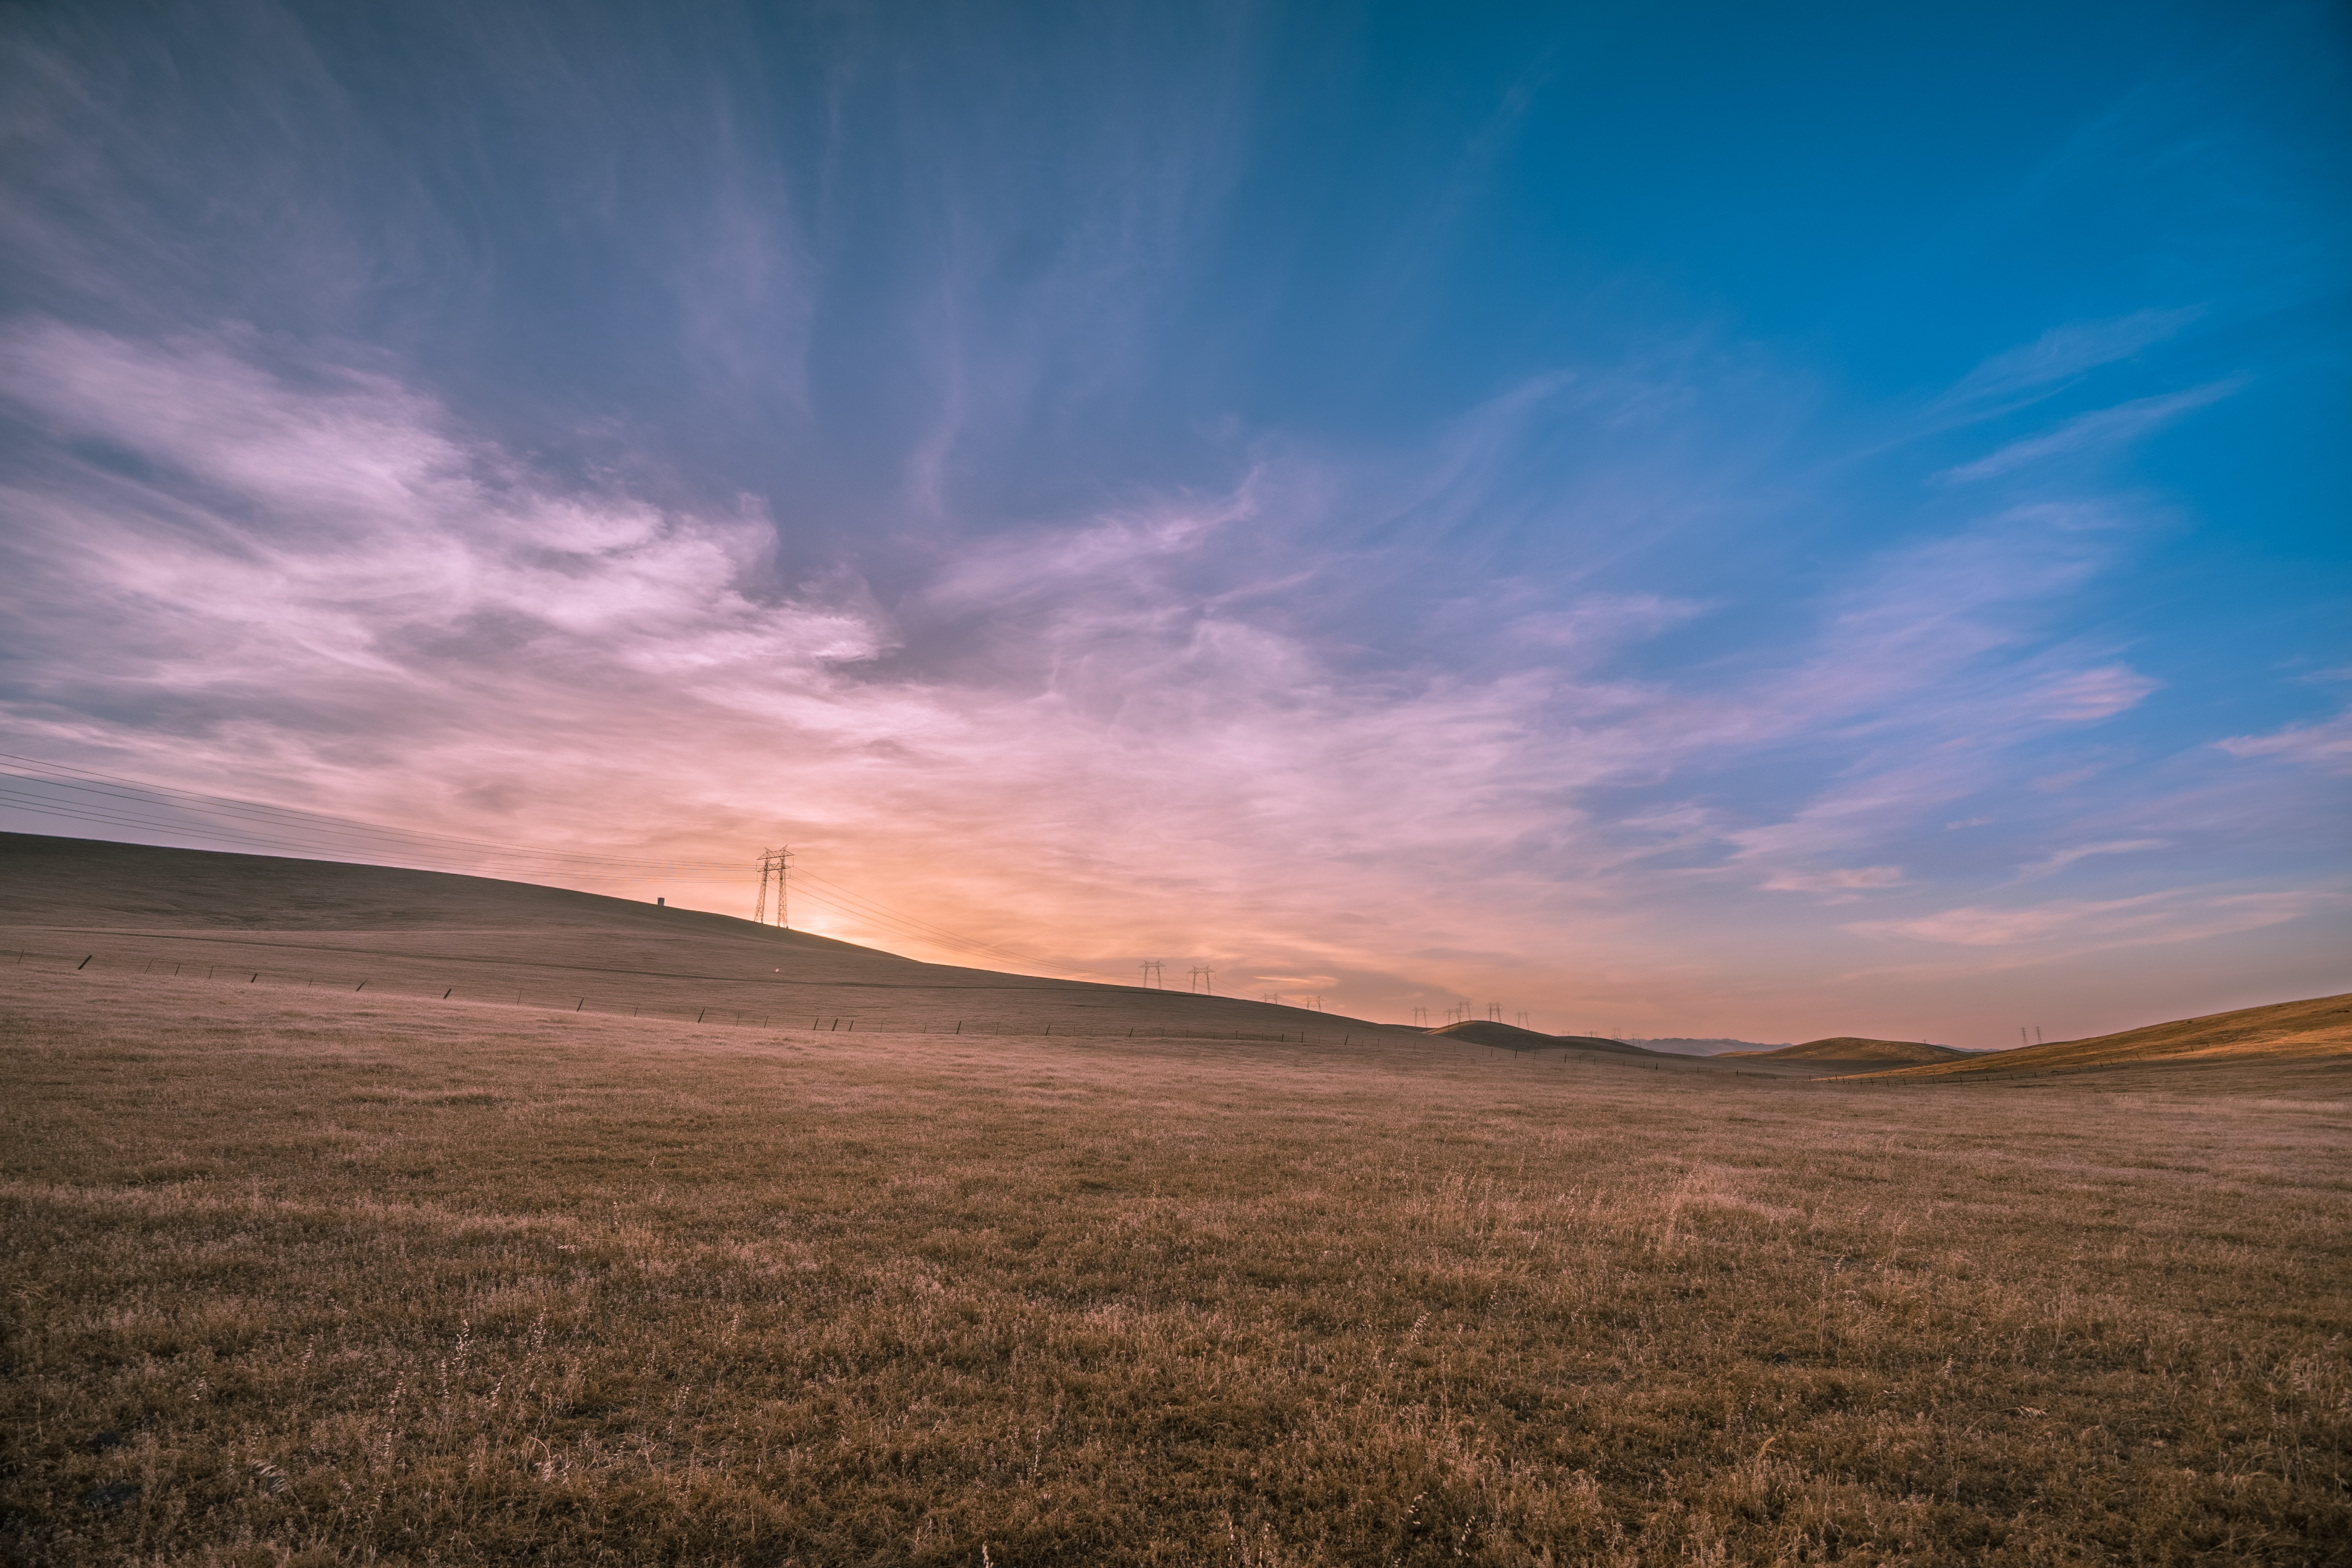 A countryside field during a pink and blue sunset